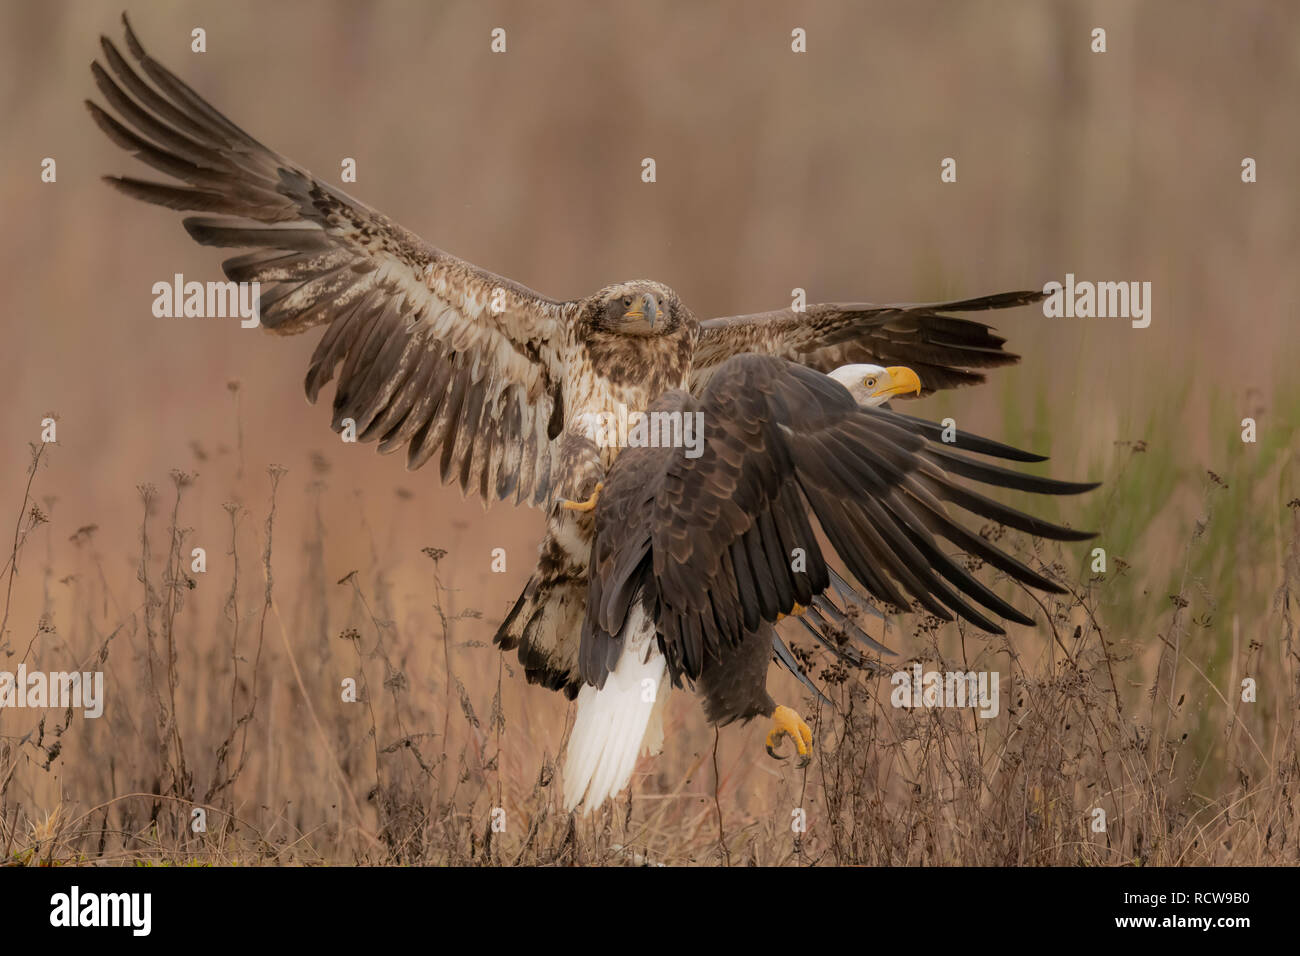 Two Bald Eagles (Haliaeetus leucocephalus) battle over territory and food in the Pacific Northwest - Stock Image